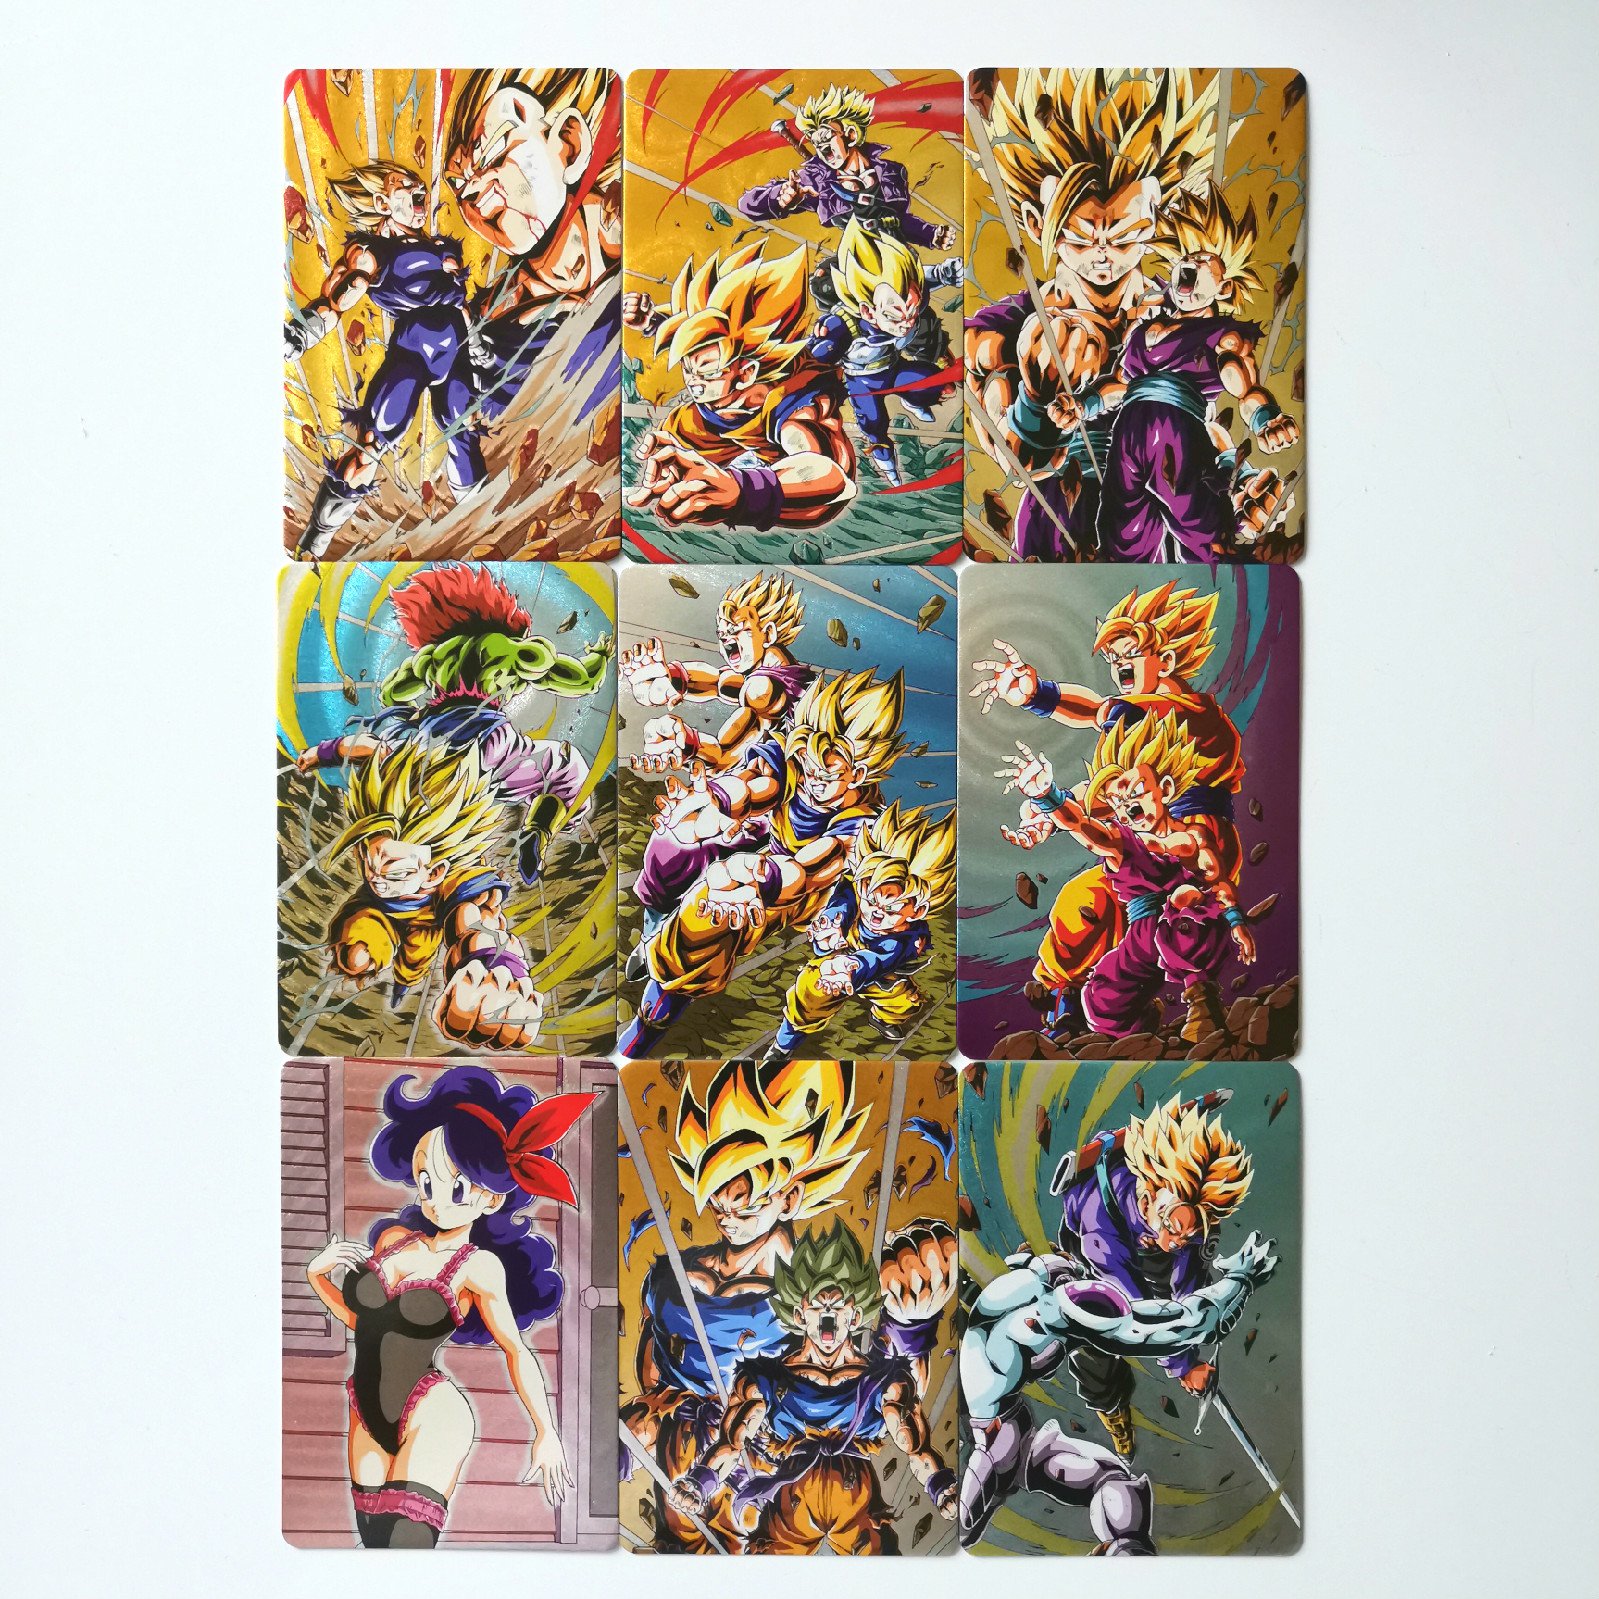 9pcs/set Warrior Thick Flash Super Dragon Ball Z Heroes Battle Card Ultra Instinct Goku Vegeta Game Collection Cards